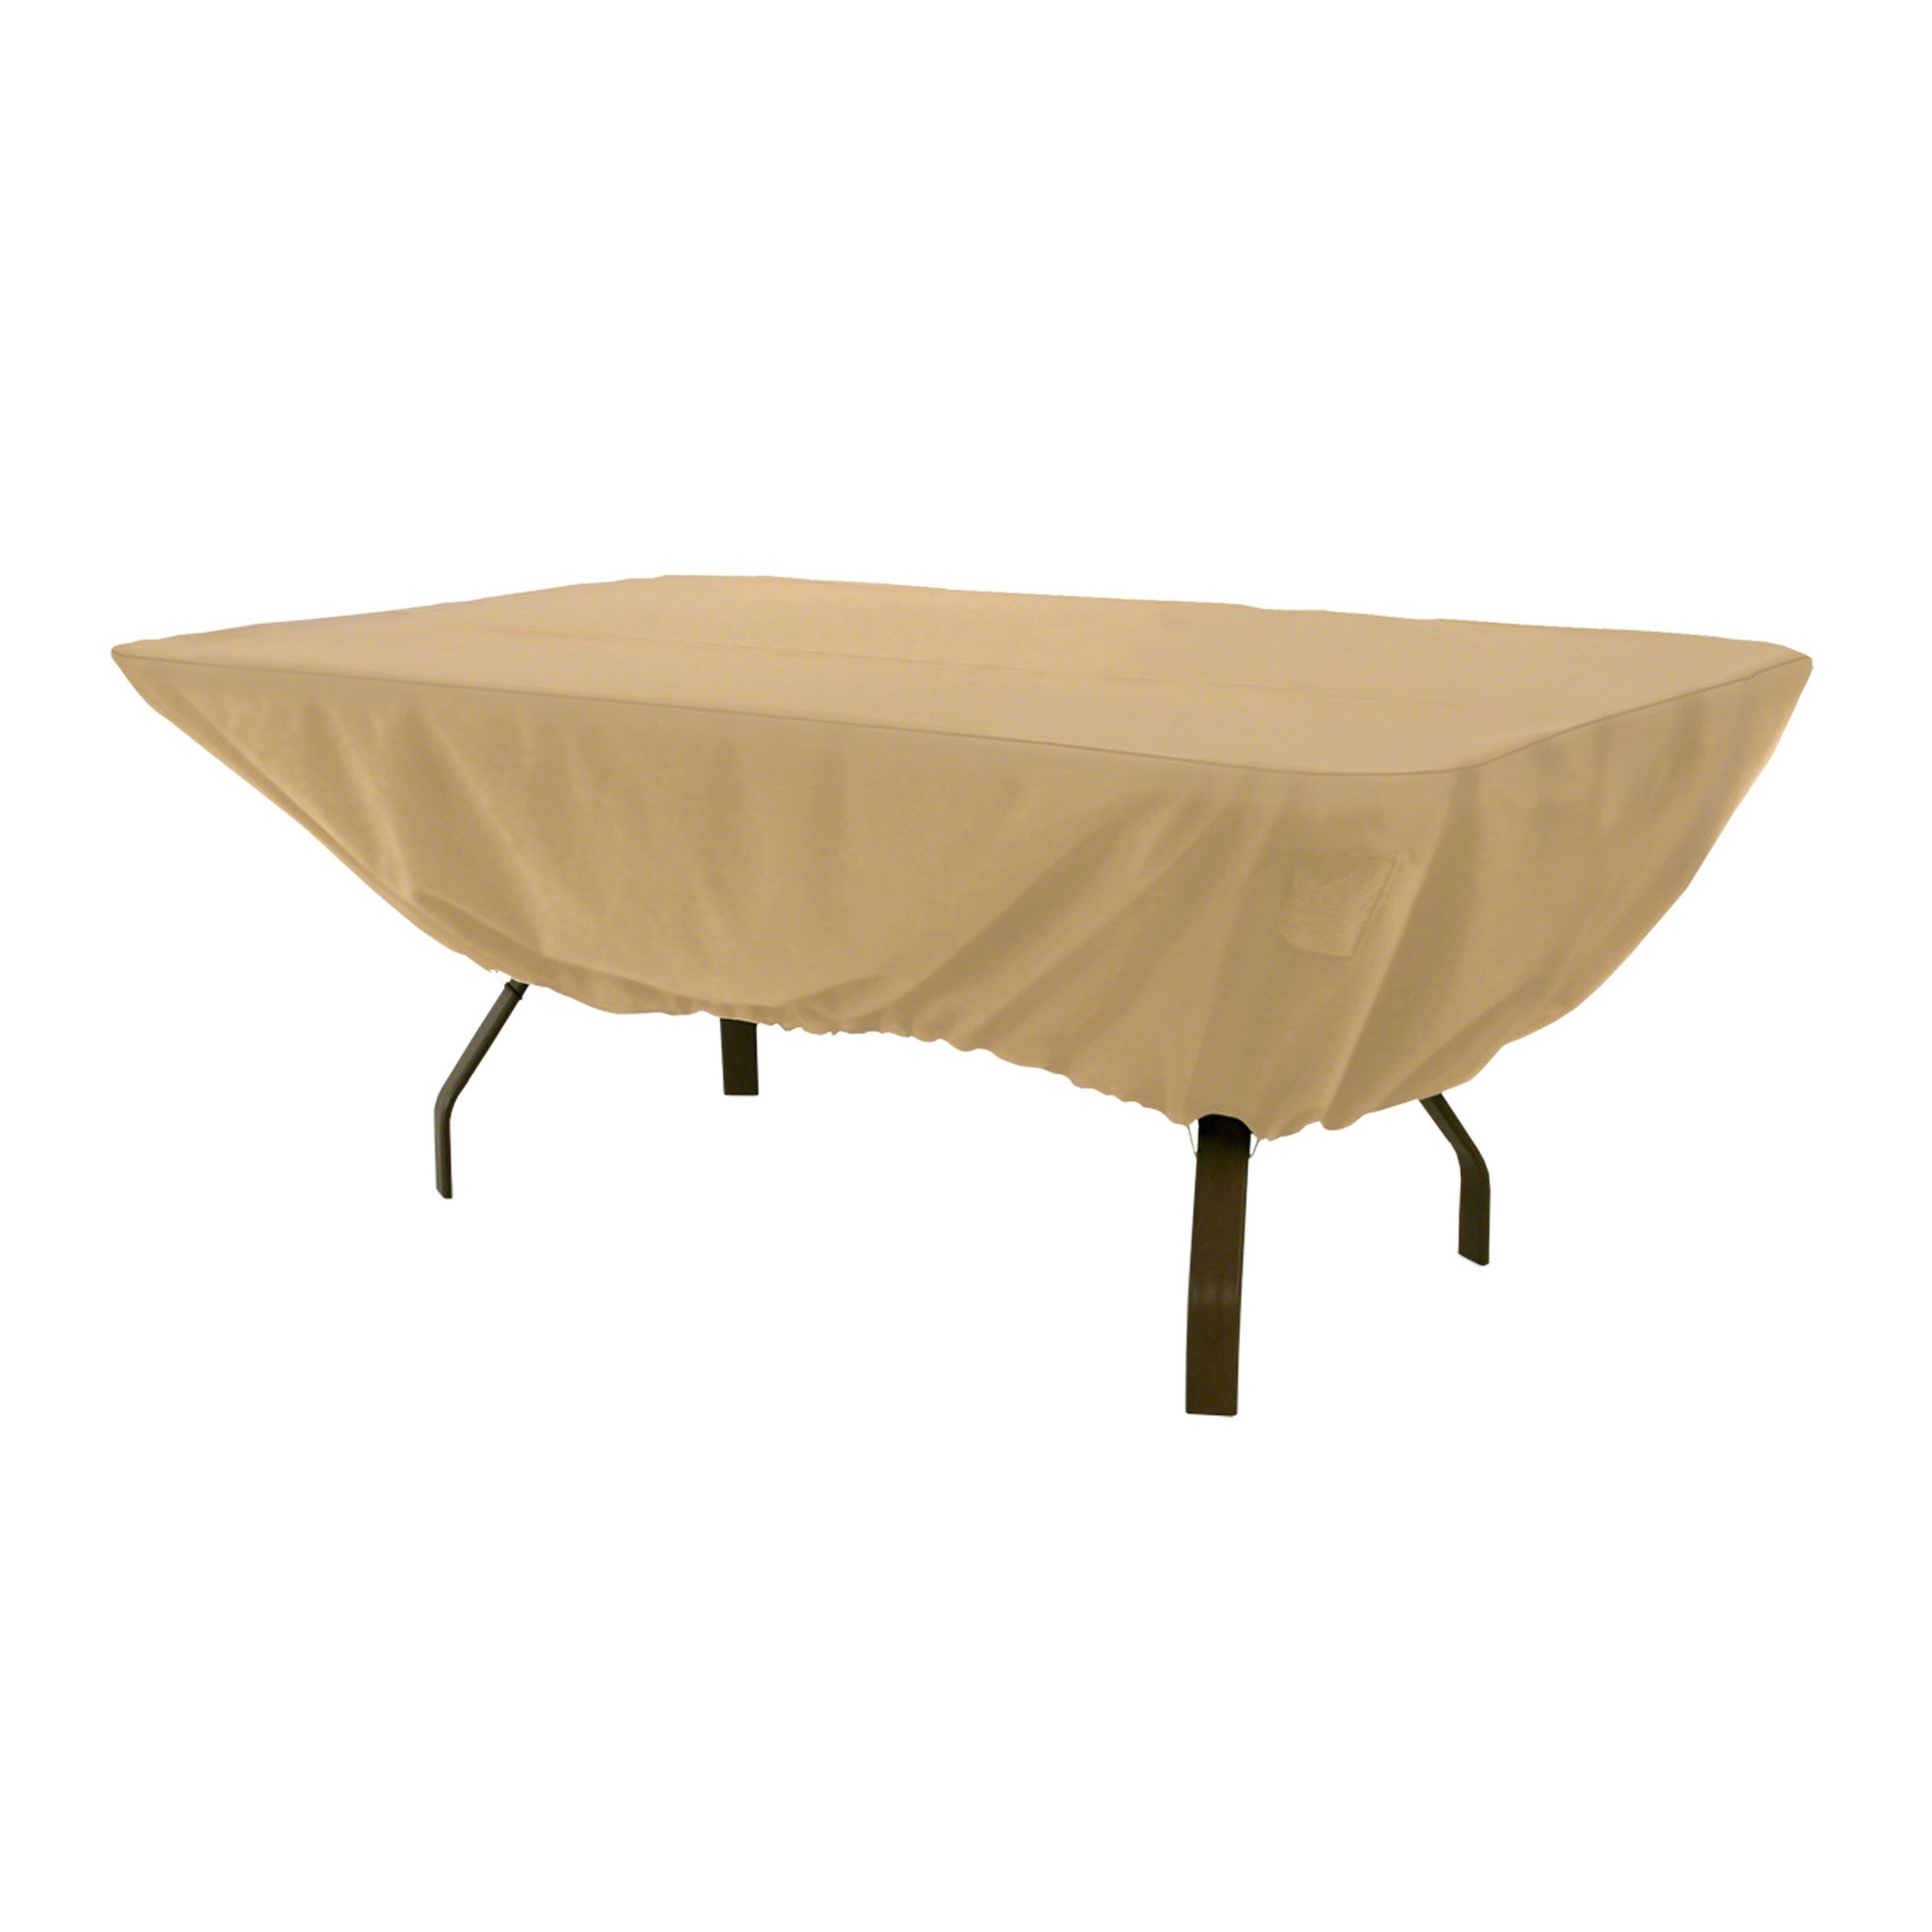 Classic Accessories Terrazzo Rectangular/Oval Patio Table Cover - All Weather Protection Outdoor Furniture Cover